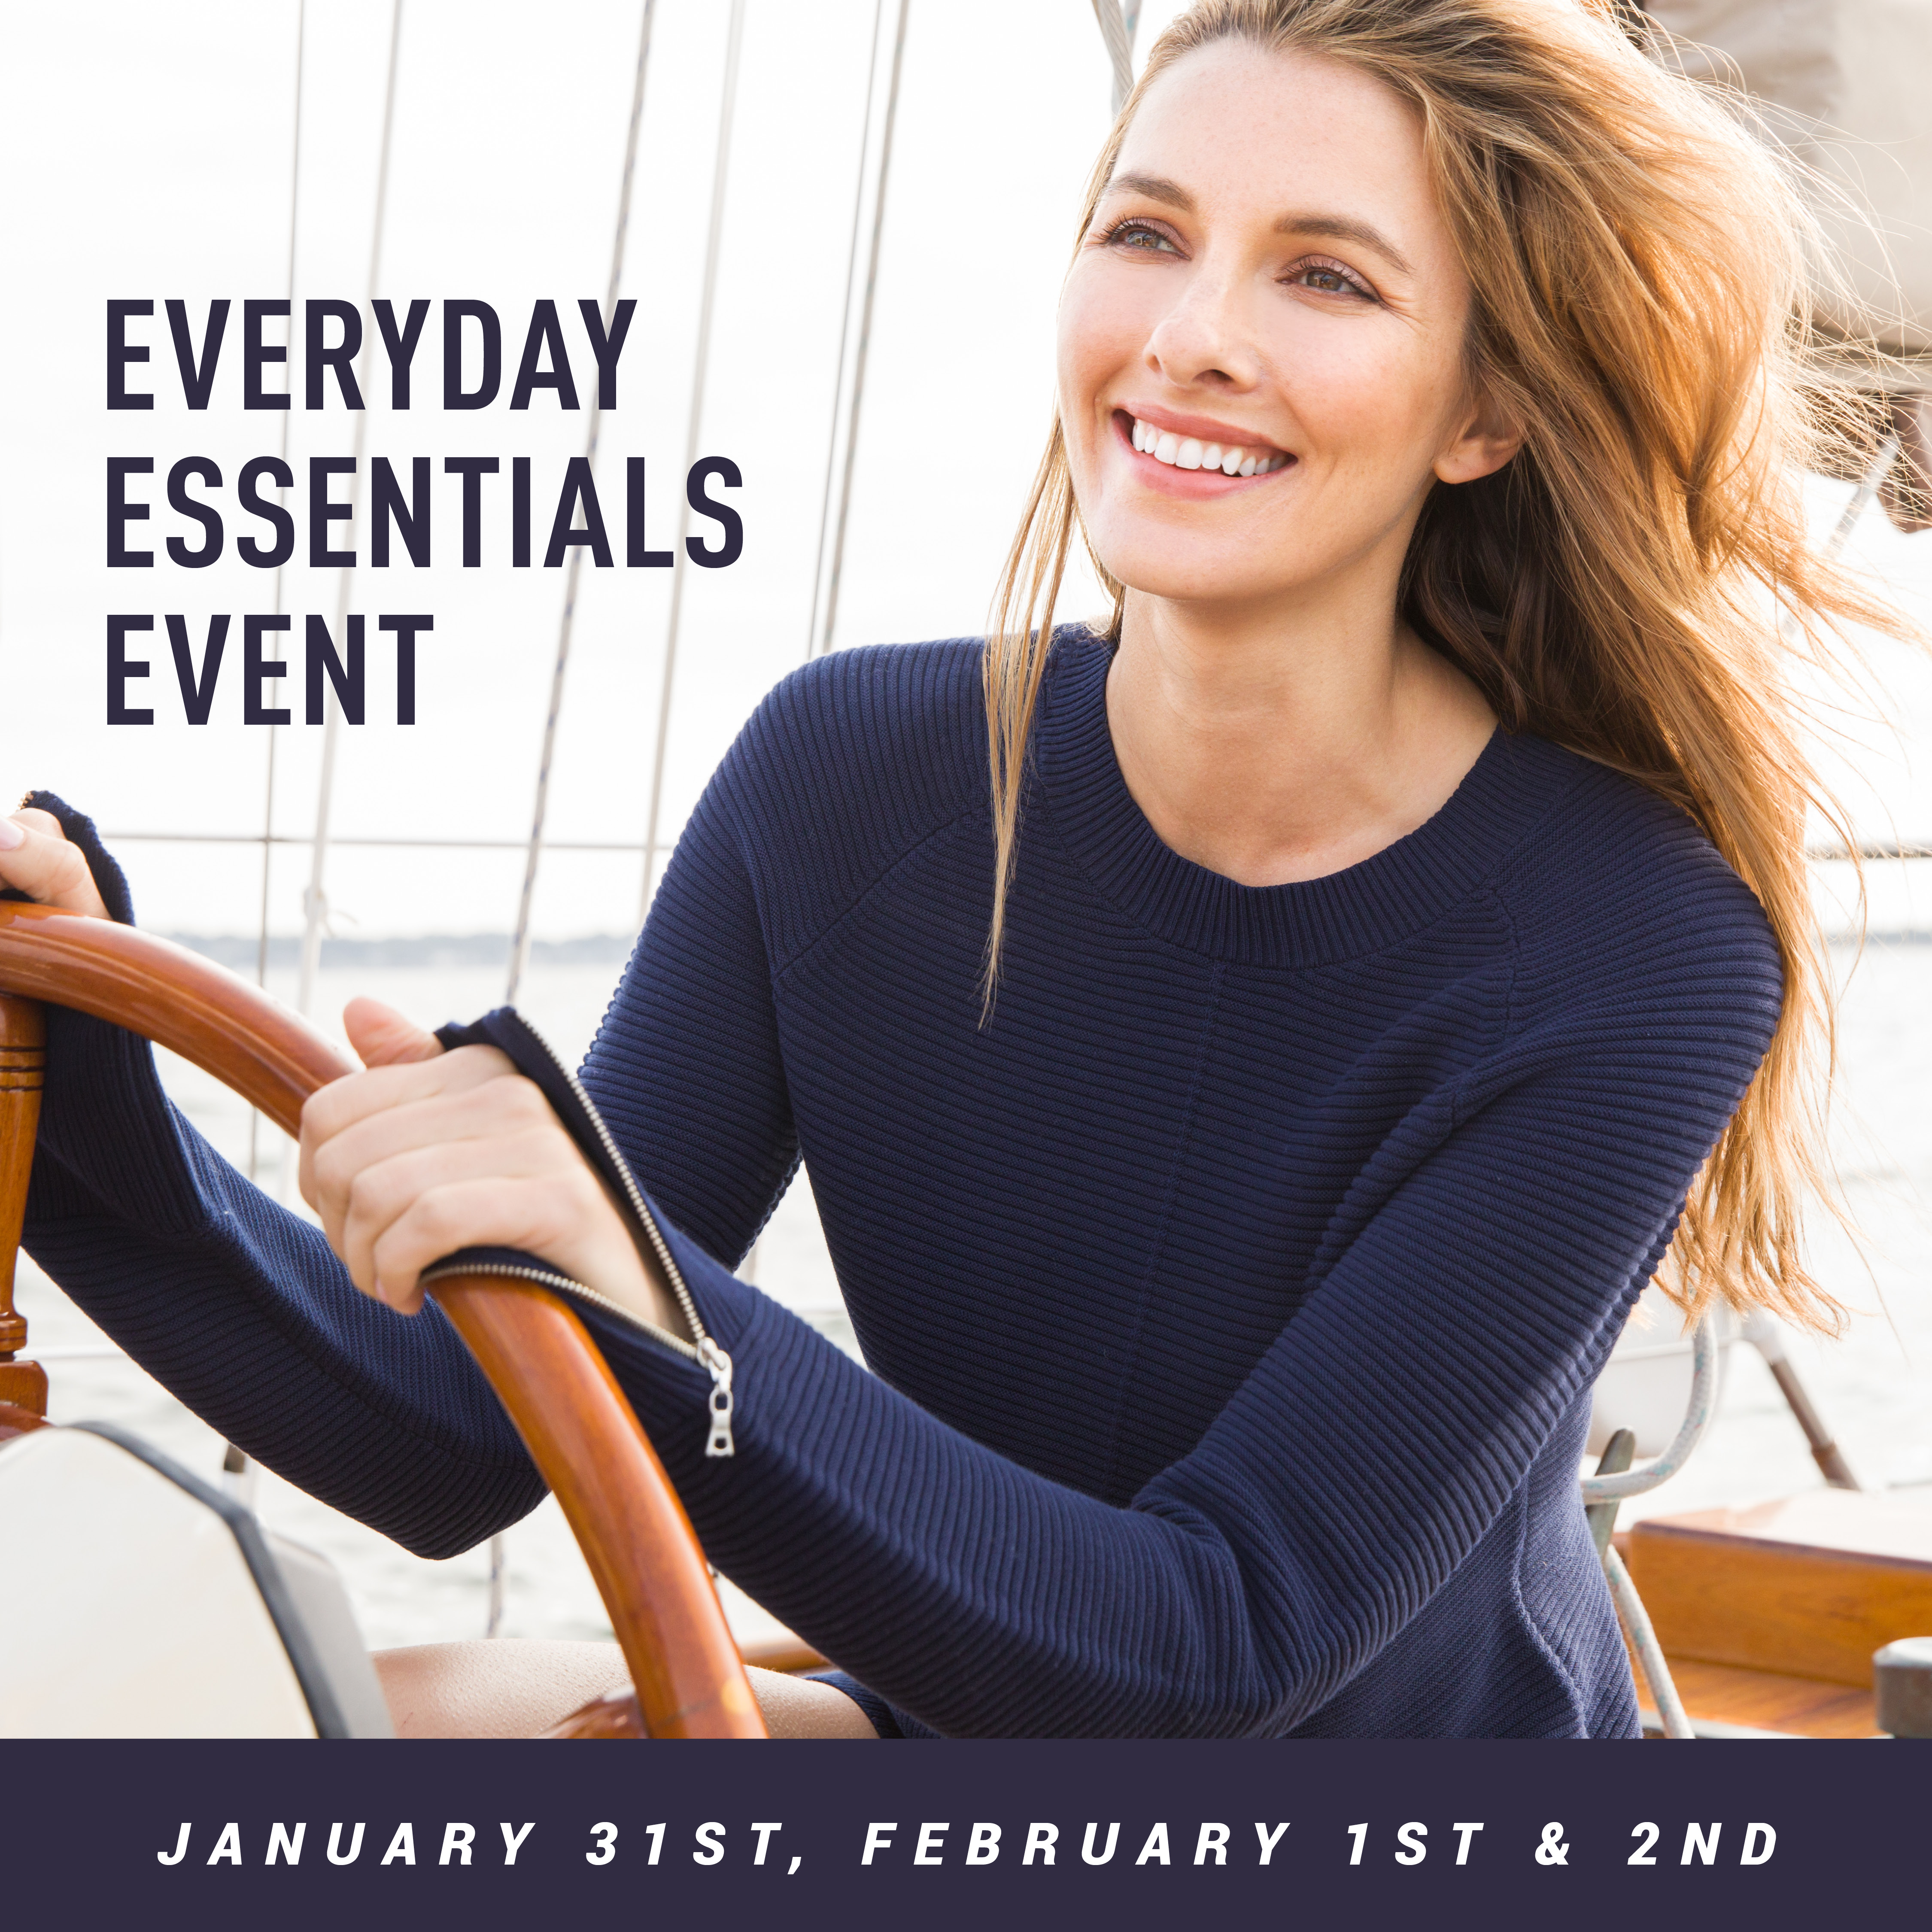 The Everyday Essentials Event